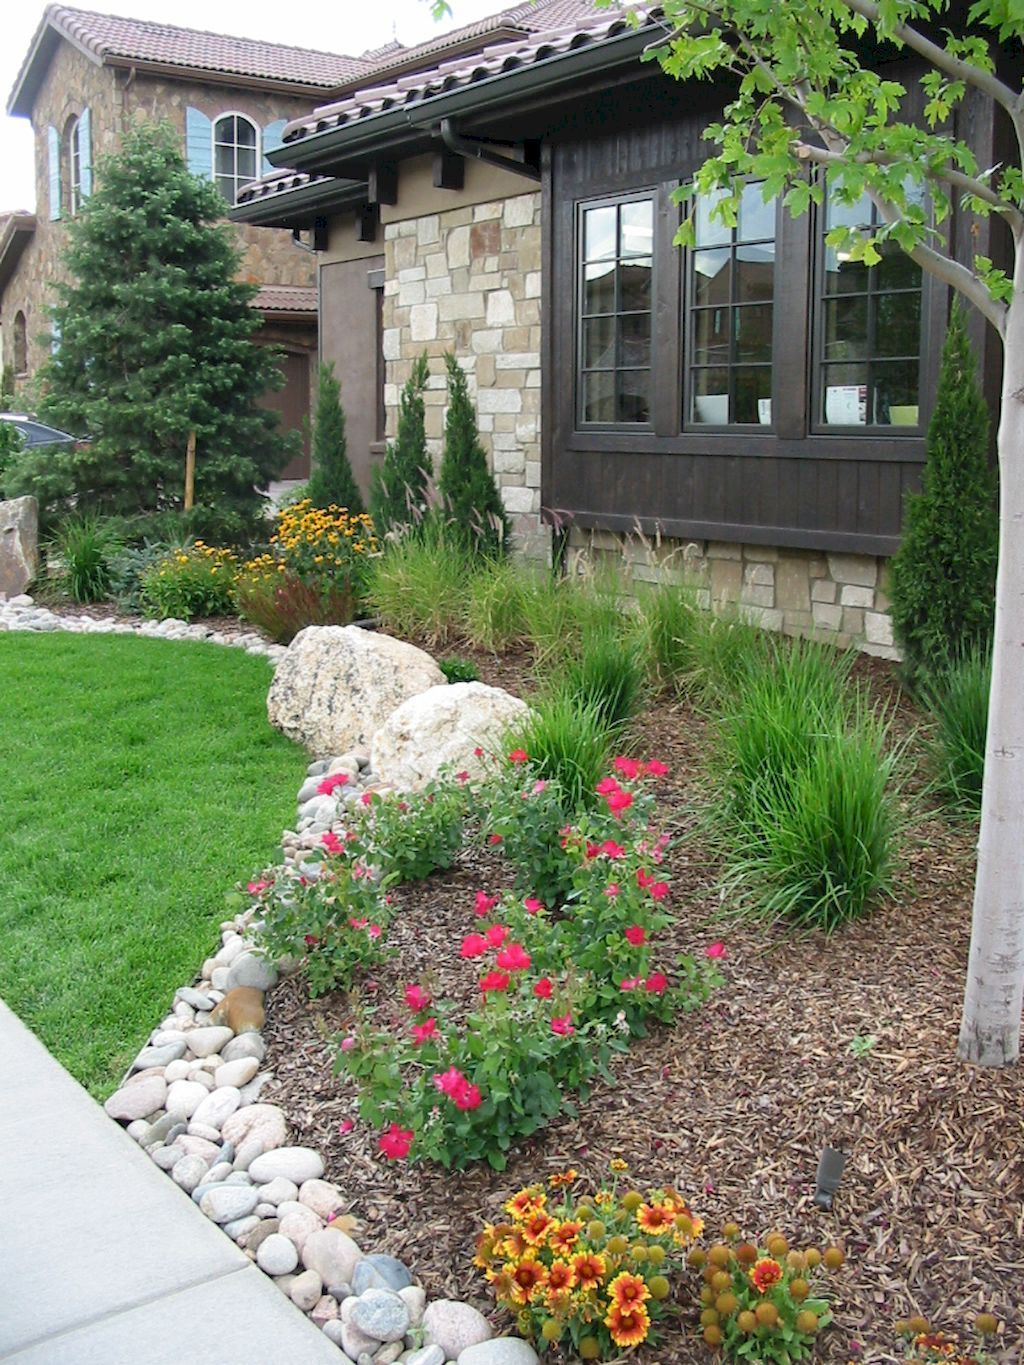 low maintenance front yard landscaping ideas 35 small on front yard landscaping ideas id=61343